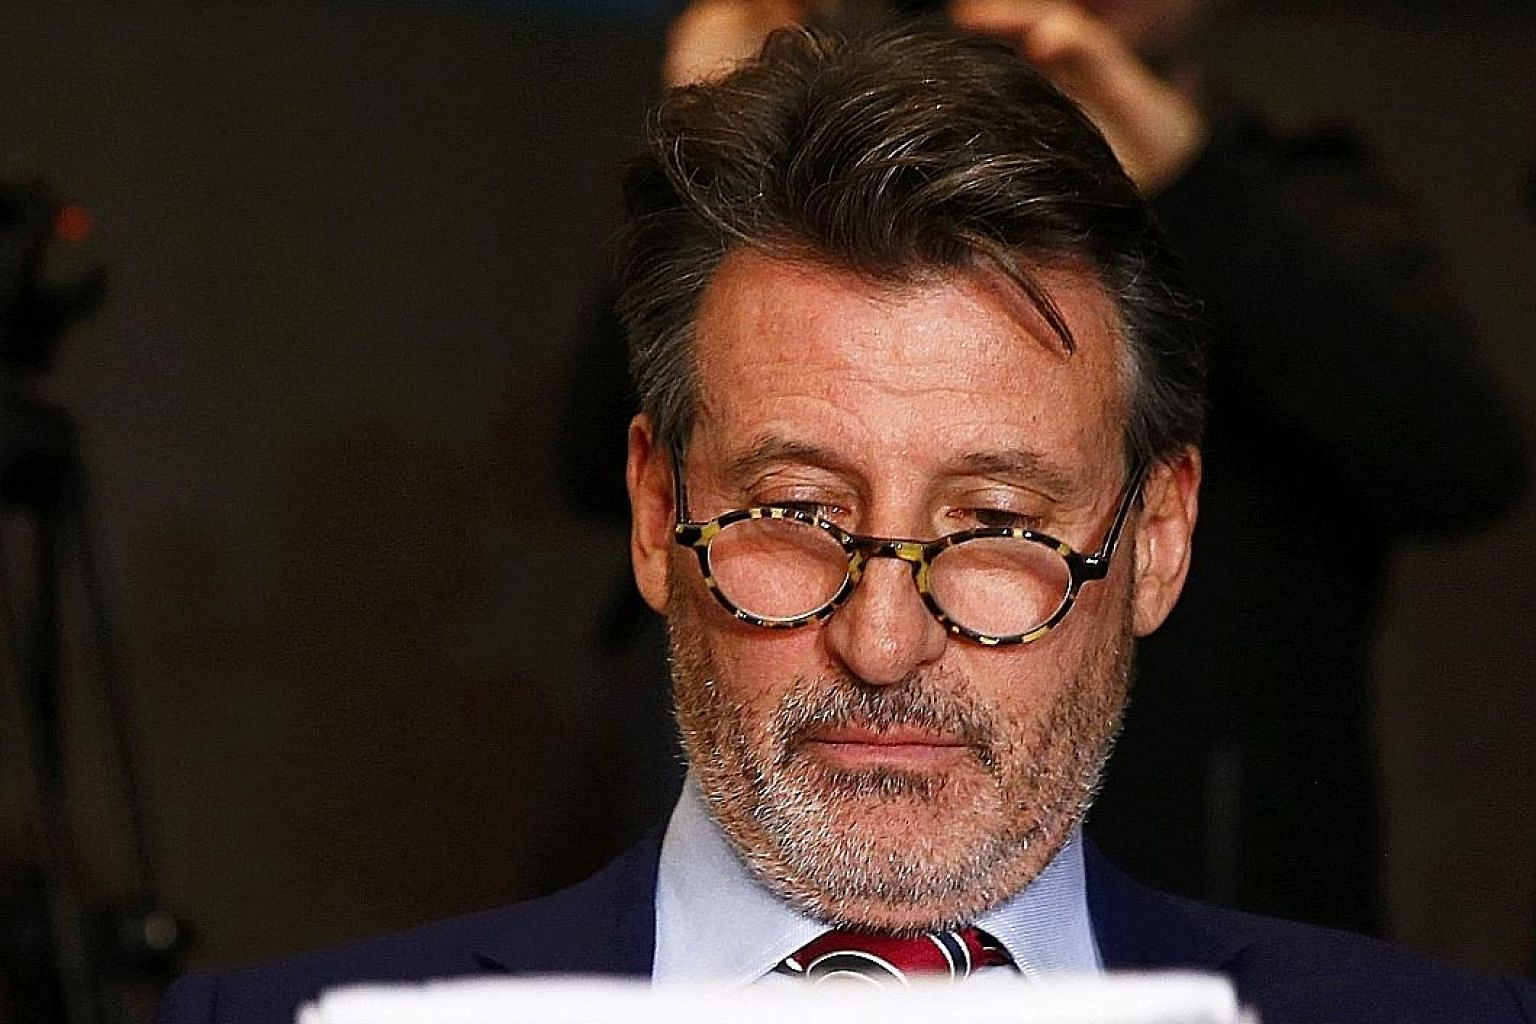 """IAAF president Sebastian Coe, seen here at a news conference in January, has been accused by German researchers of giving """"untrue"""" and """"misleading"""" evidence to a British parliamentary investigation into blood doping in sport."""